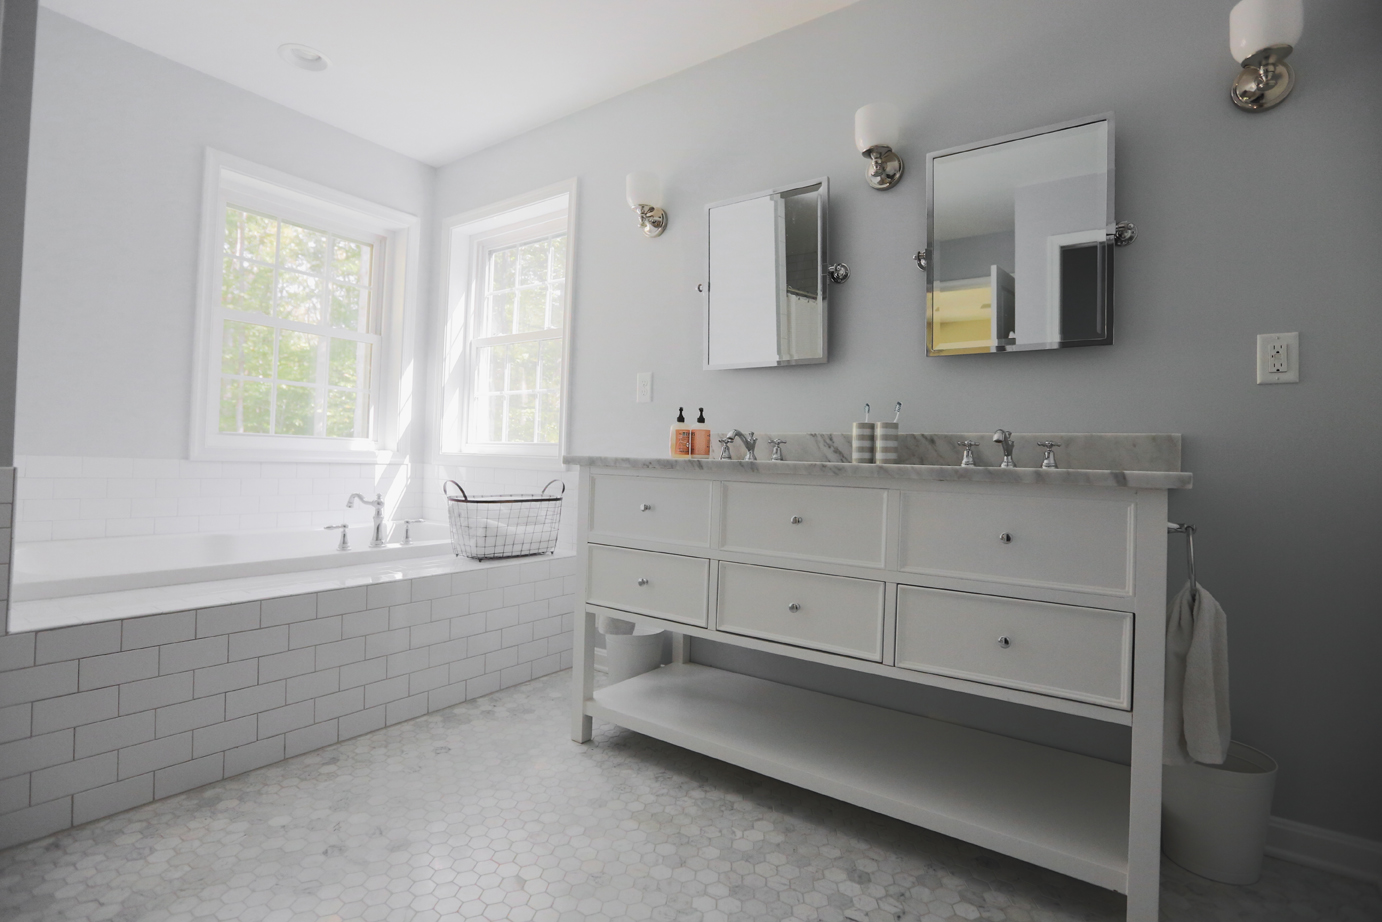 25 Grey Wall Tiles For Bathroom Ideas And Pictures 2019